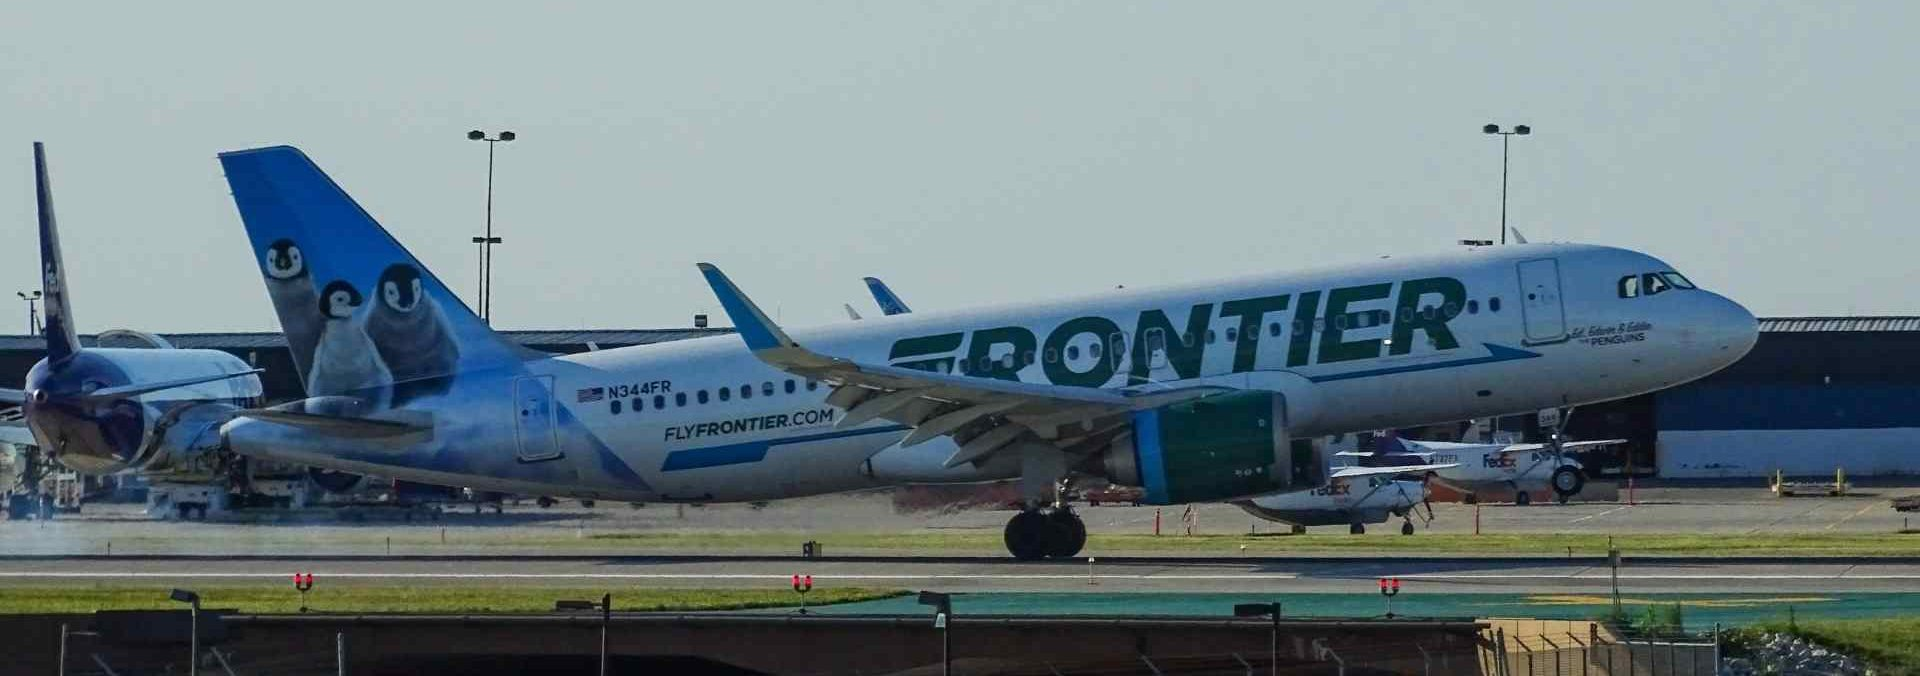 Frontier Airlines Adds new Routes DFW, ATL, LAS - SkyGoFly